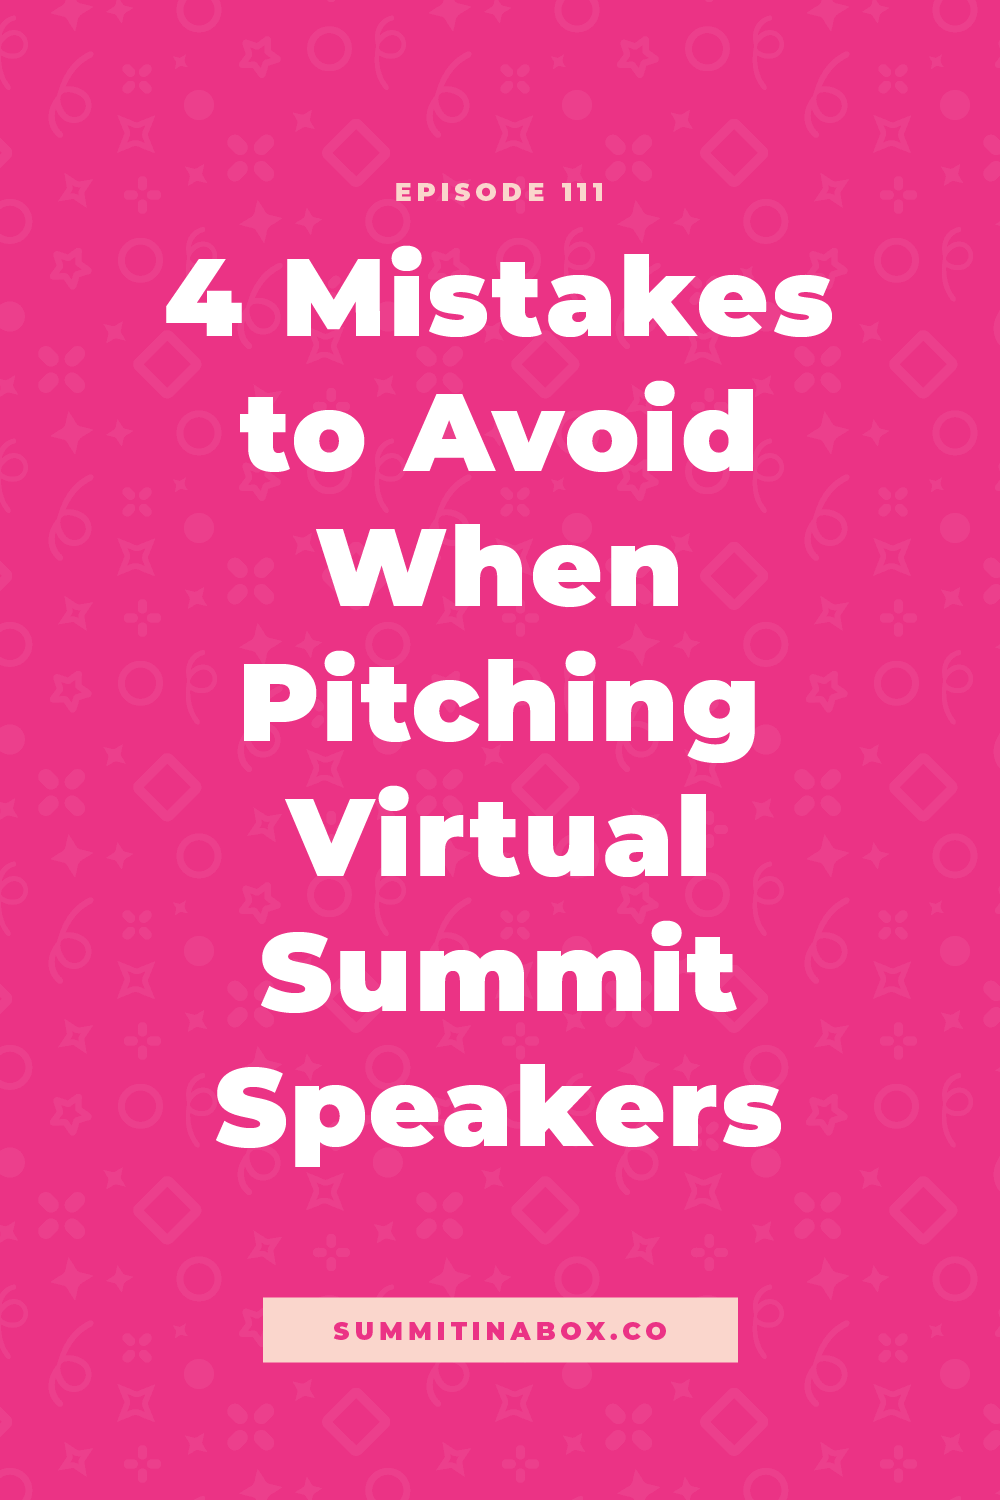 We all know a bad pitch when we see it, but do you feel confident in your pitches? Let's cover 4 mistakes to avoid when pitching virtual summit speakers.